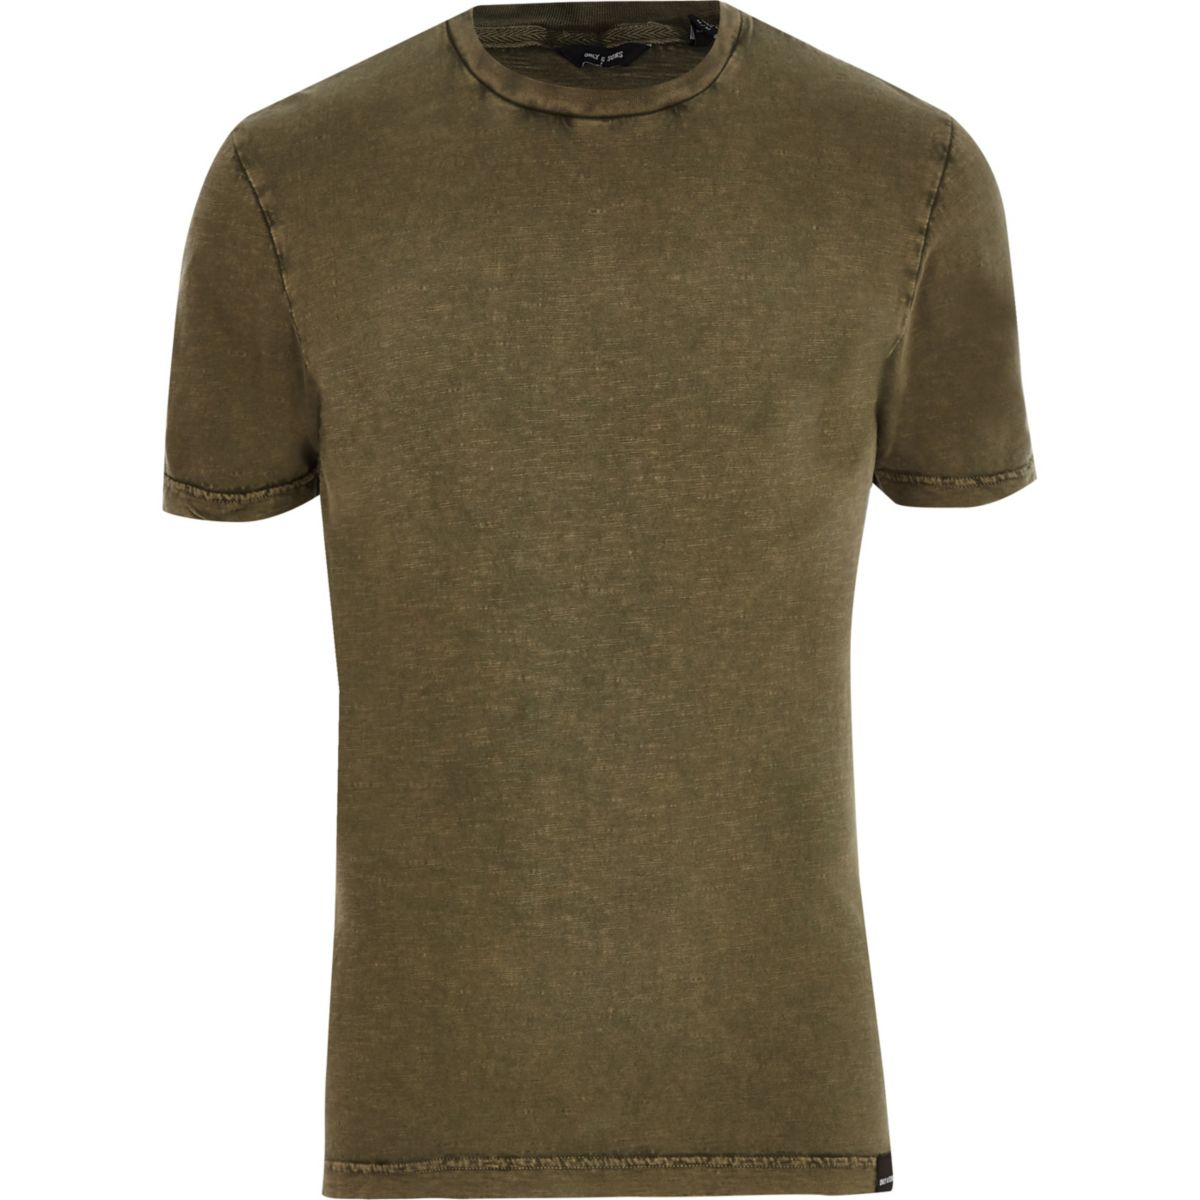 Only & Sons khaki green short sleeve T-shirt